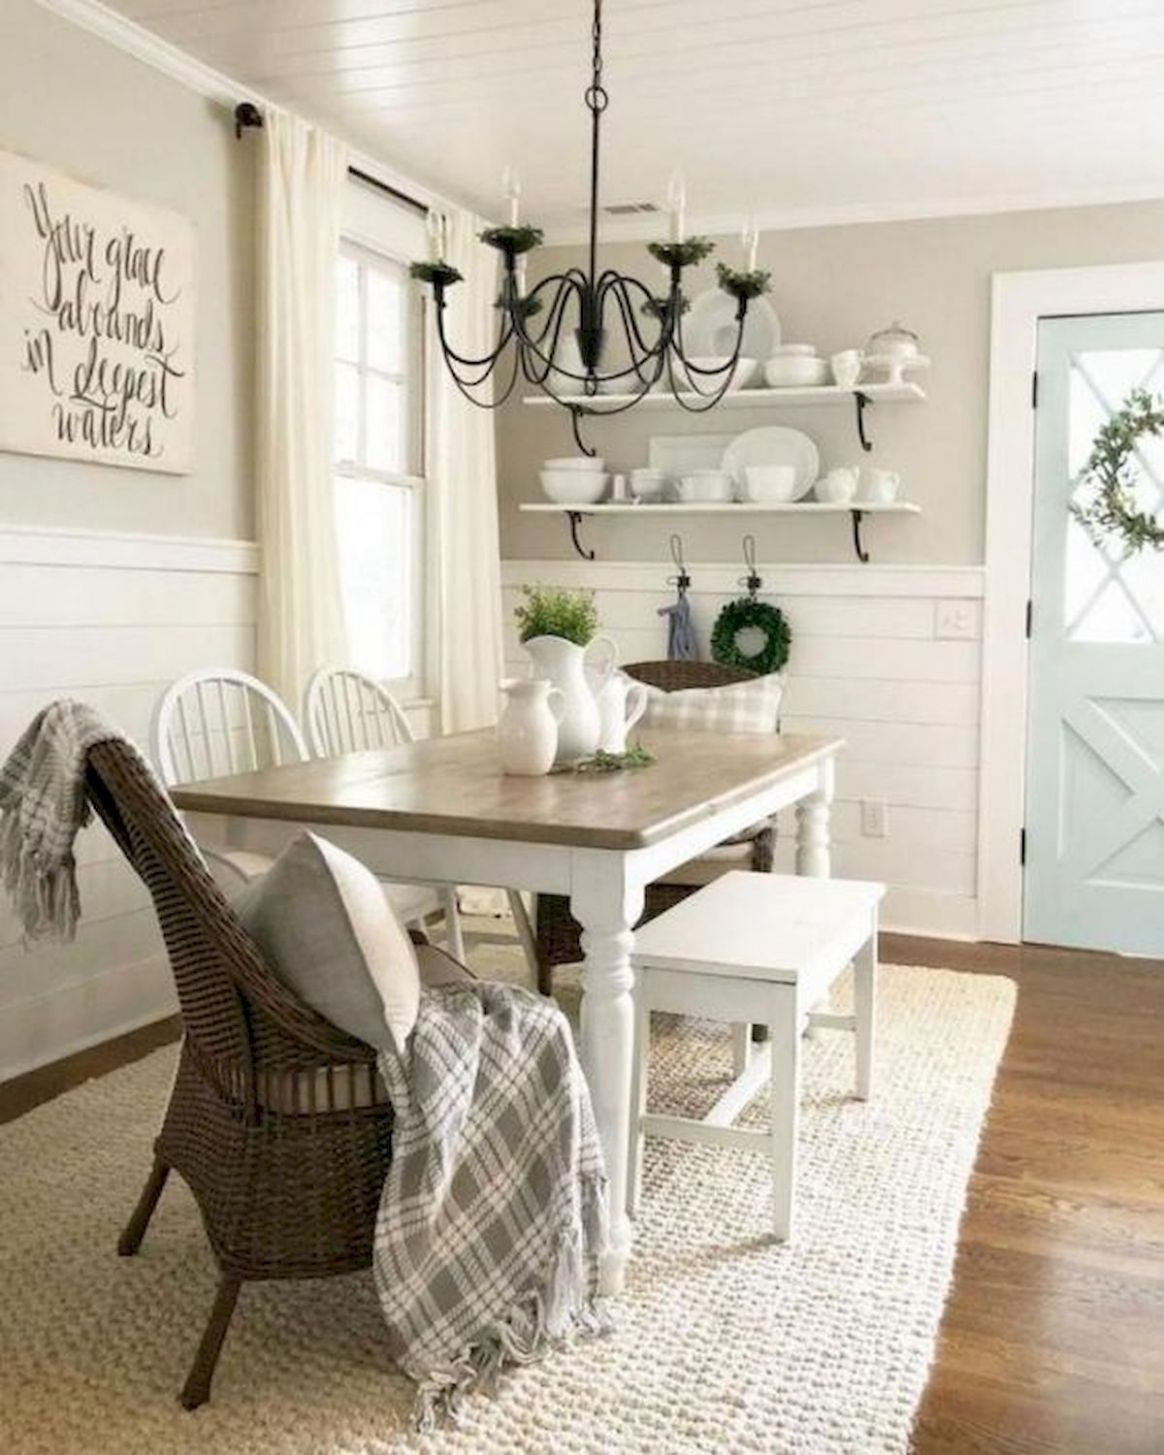 12 Best Farmhouse Table Dining Room Decor Ideas - Googodecor